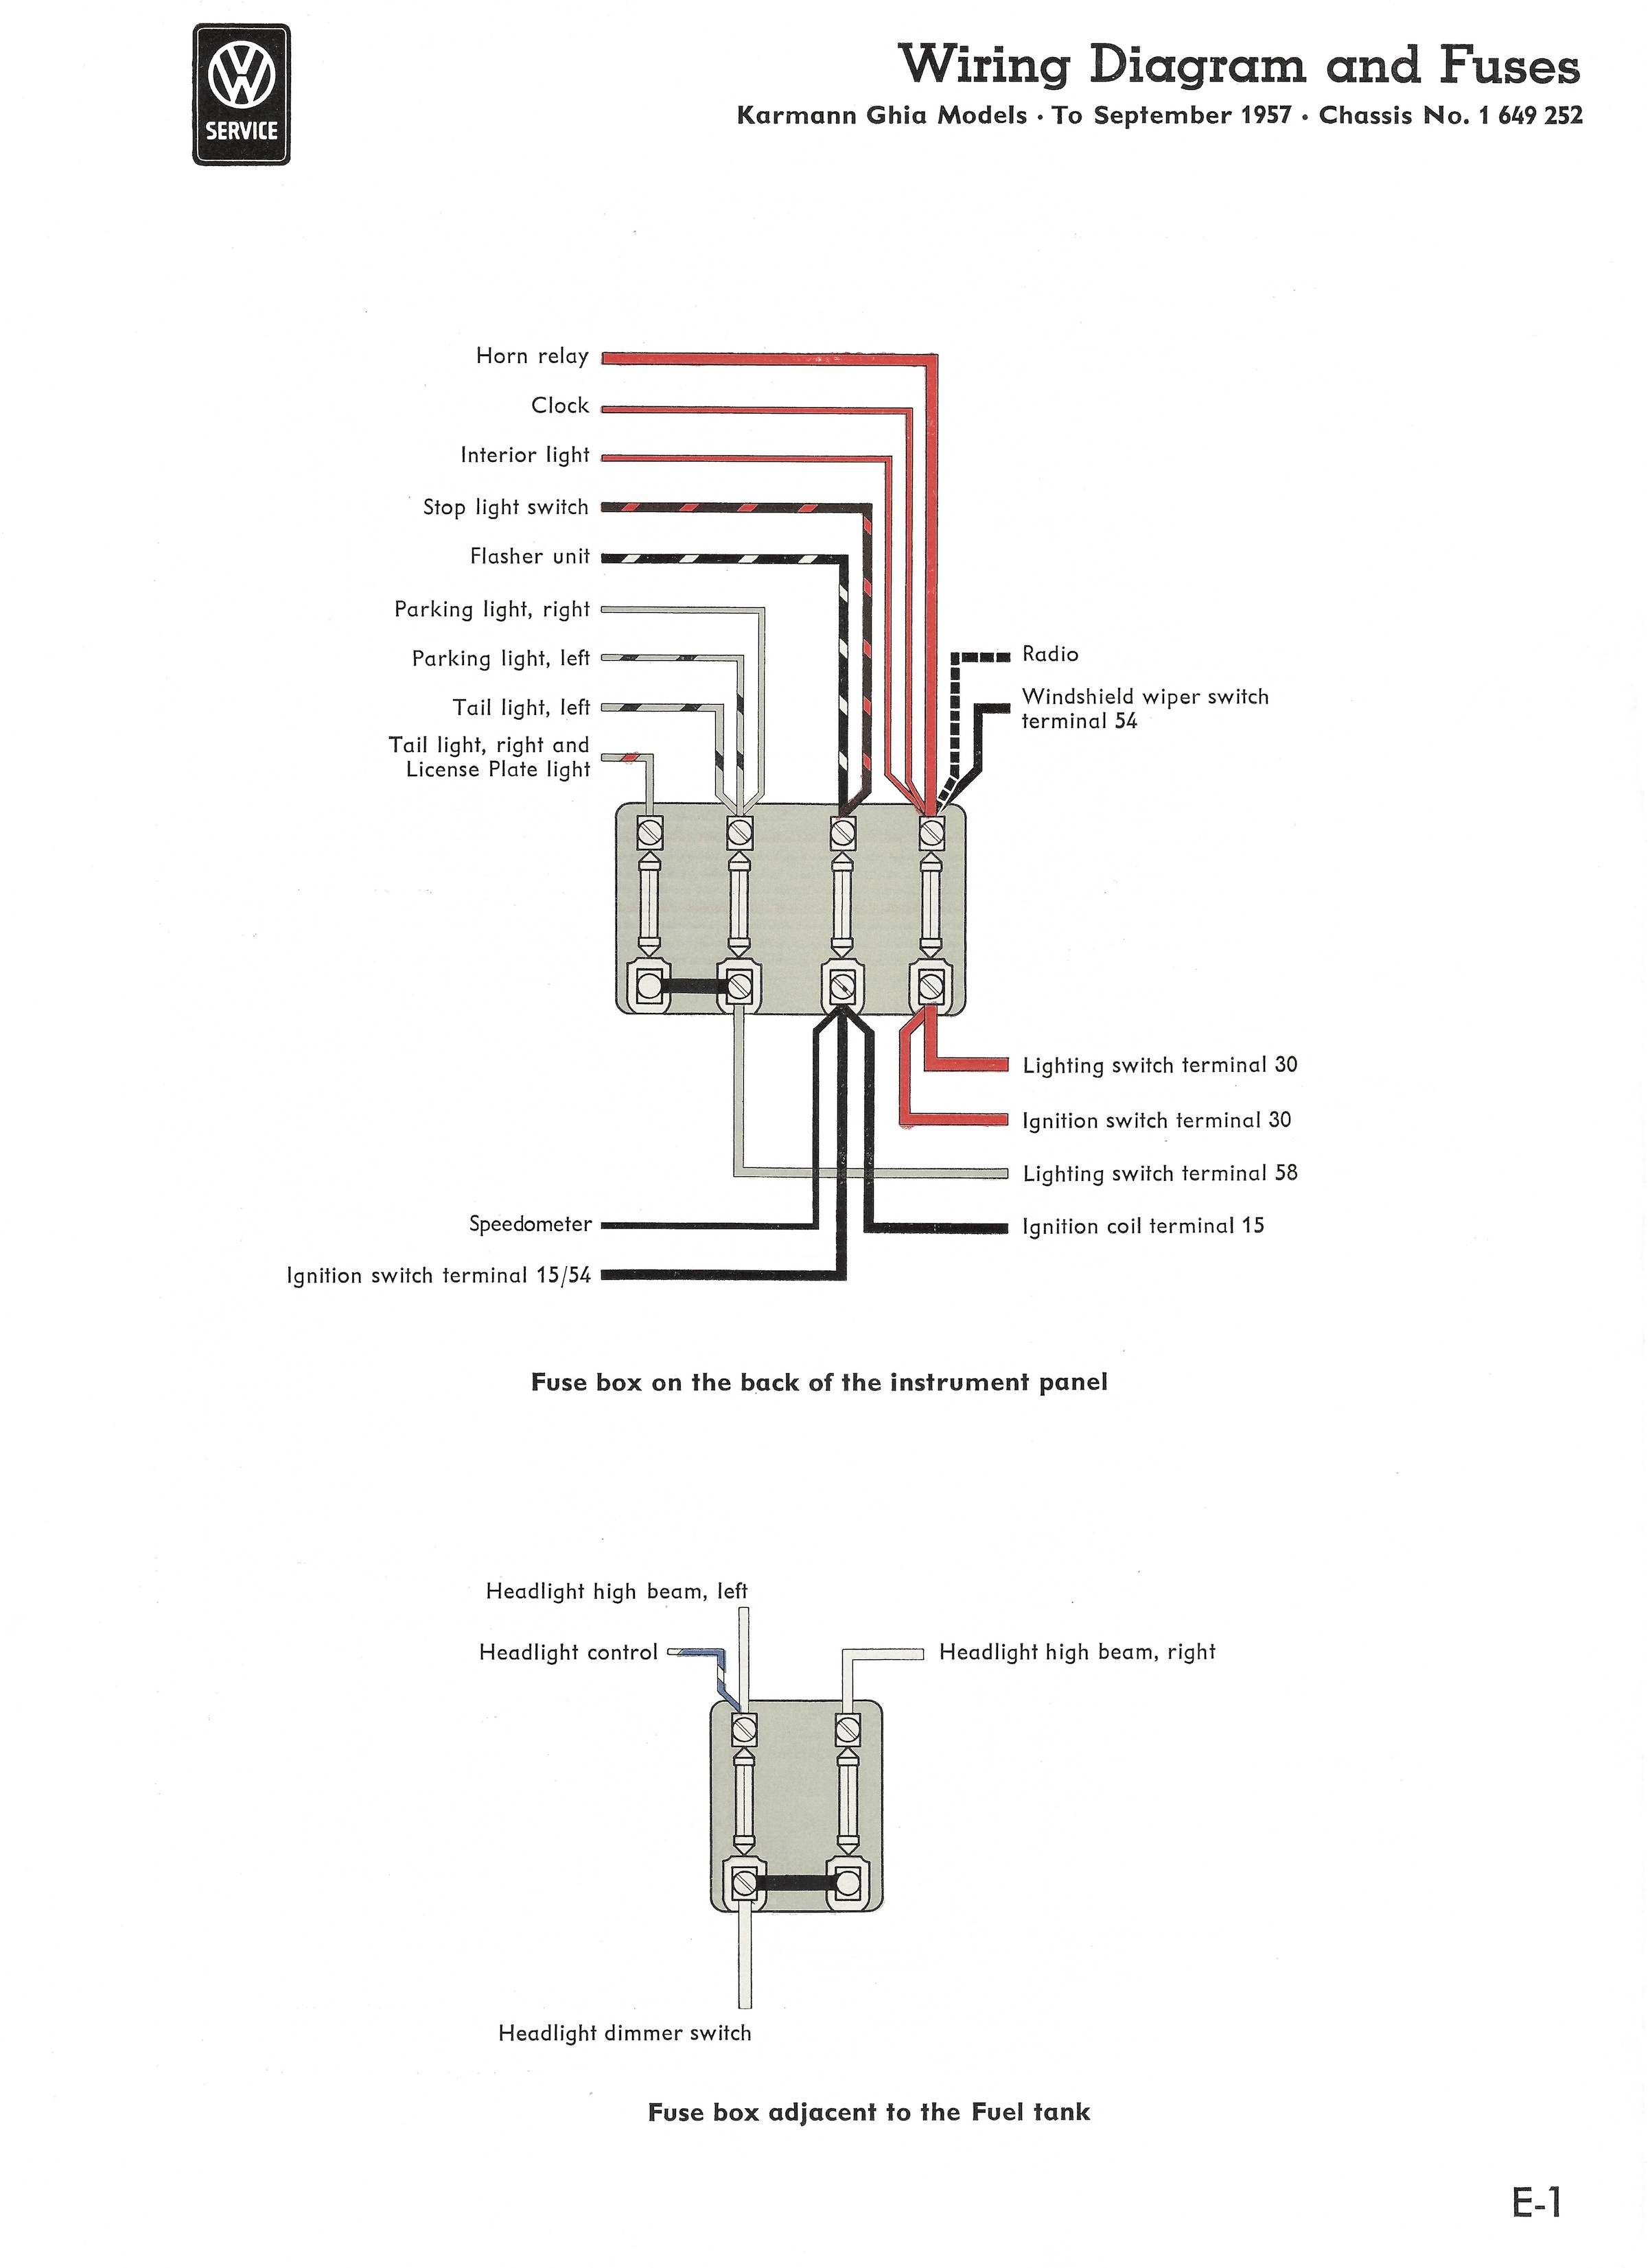 Buell Dual Headlight Wiring Diagram For